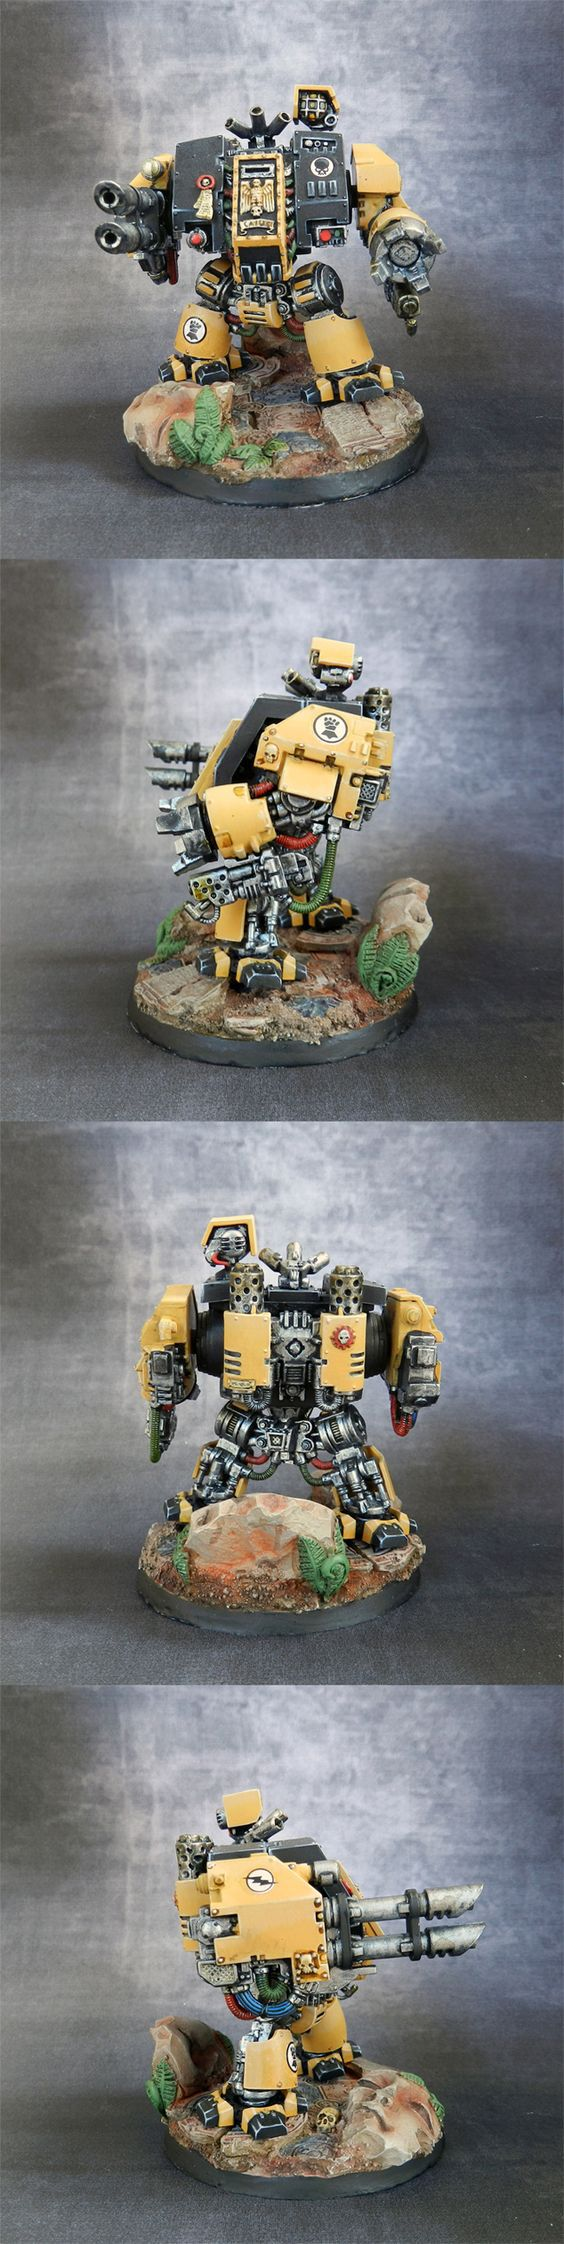 Миниатюры - Space marines - Imperial fists (dreadnought)